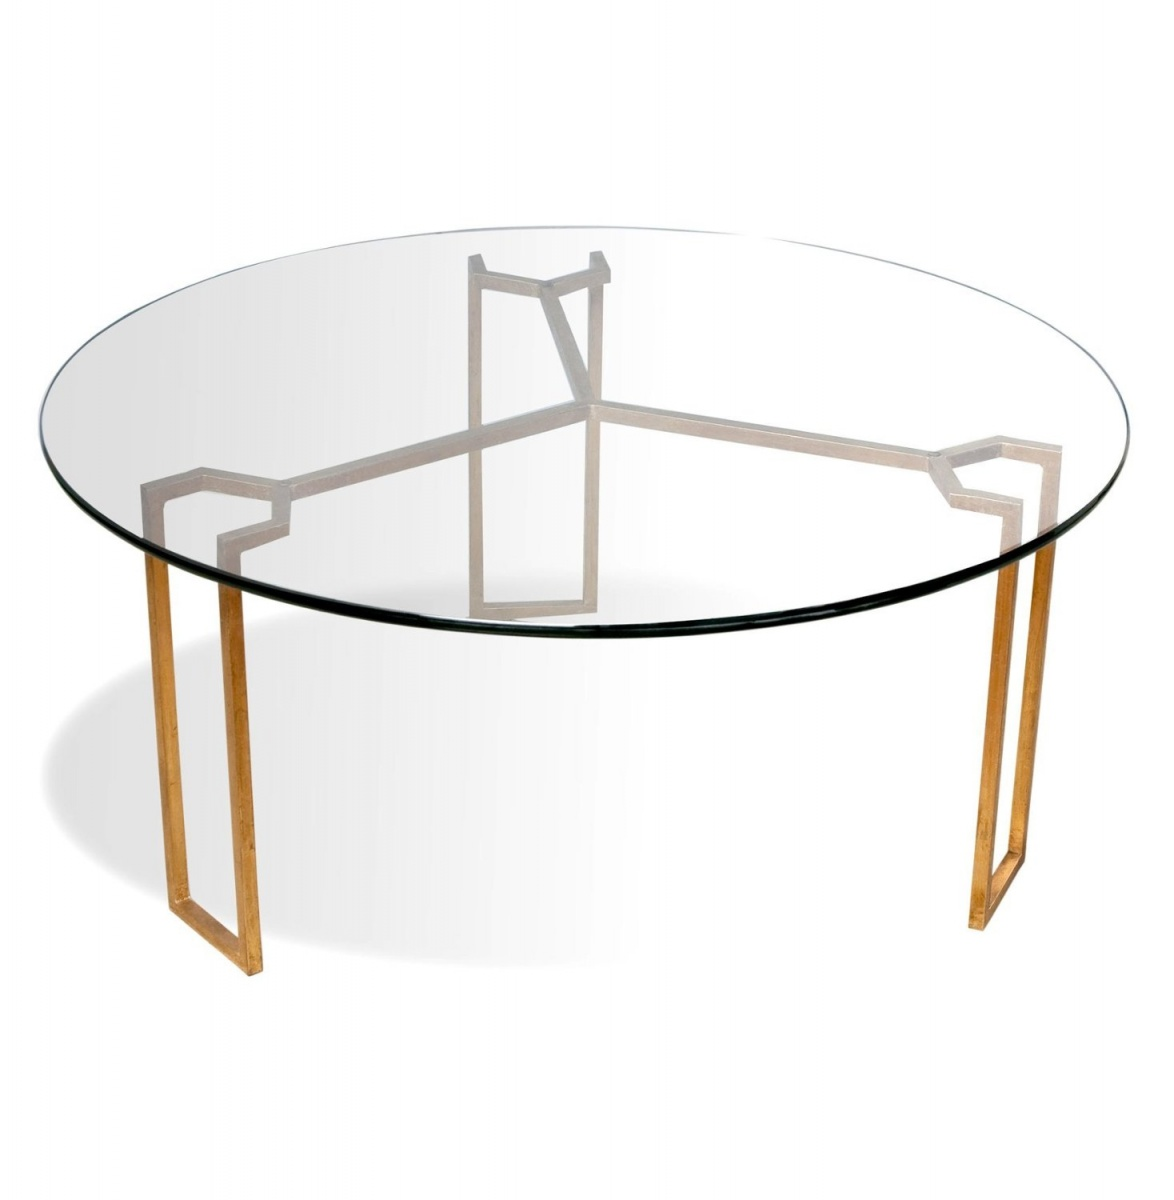 Glass Round Coffee Tables Small Round Glass Coffee Table Modern Round Coffee Table Glass Round Glass